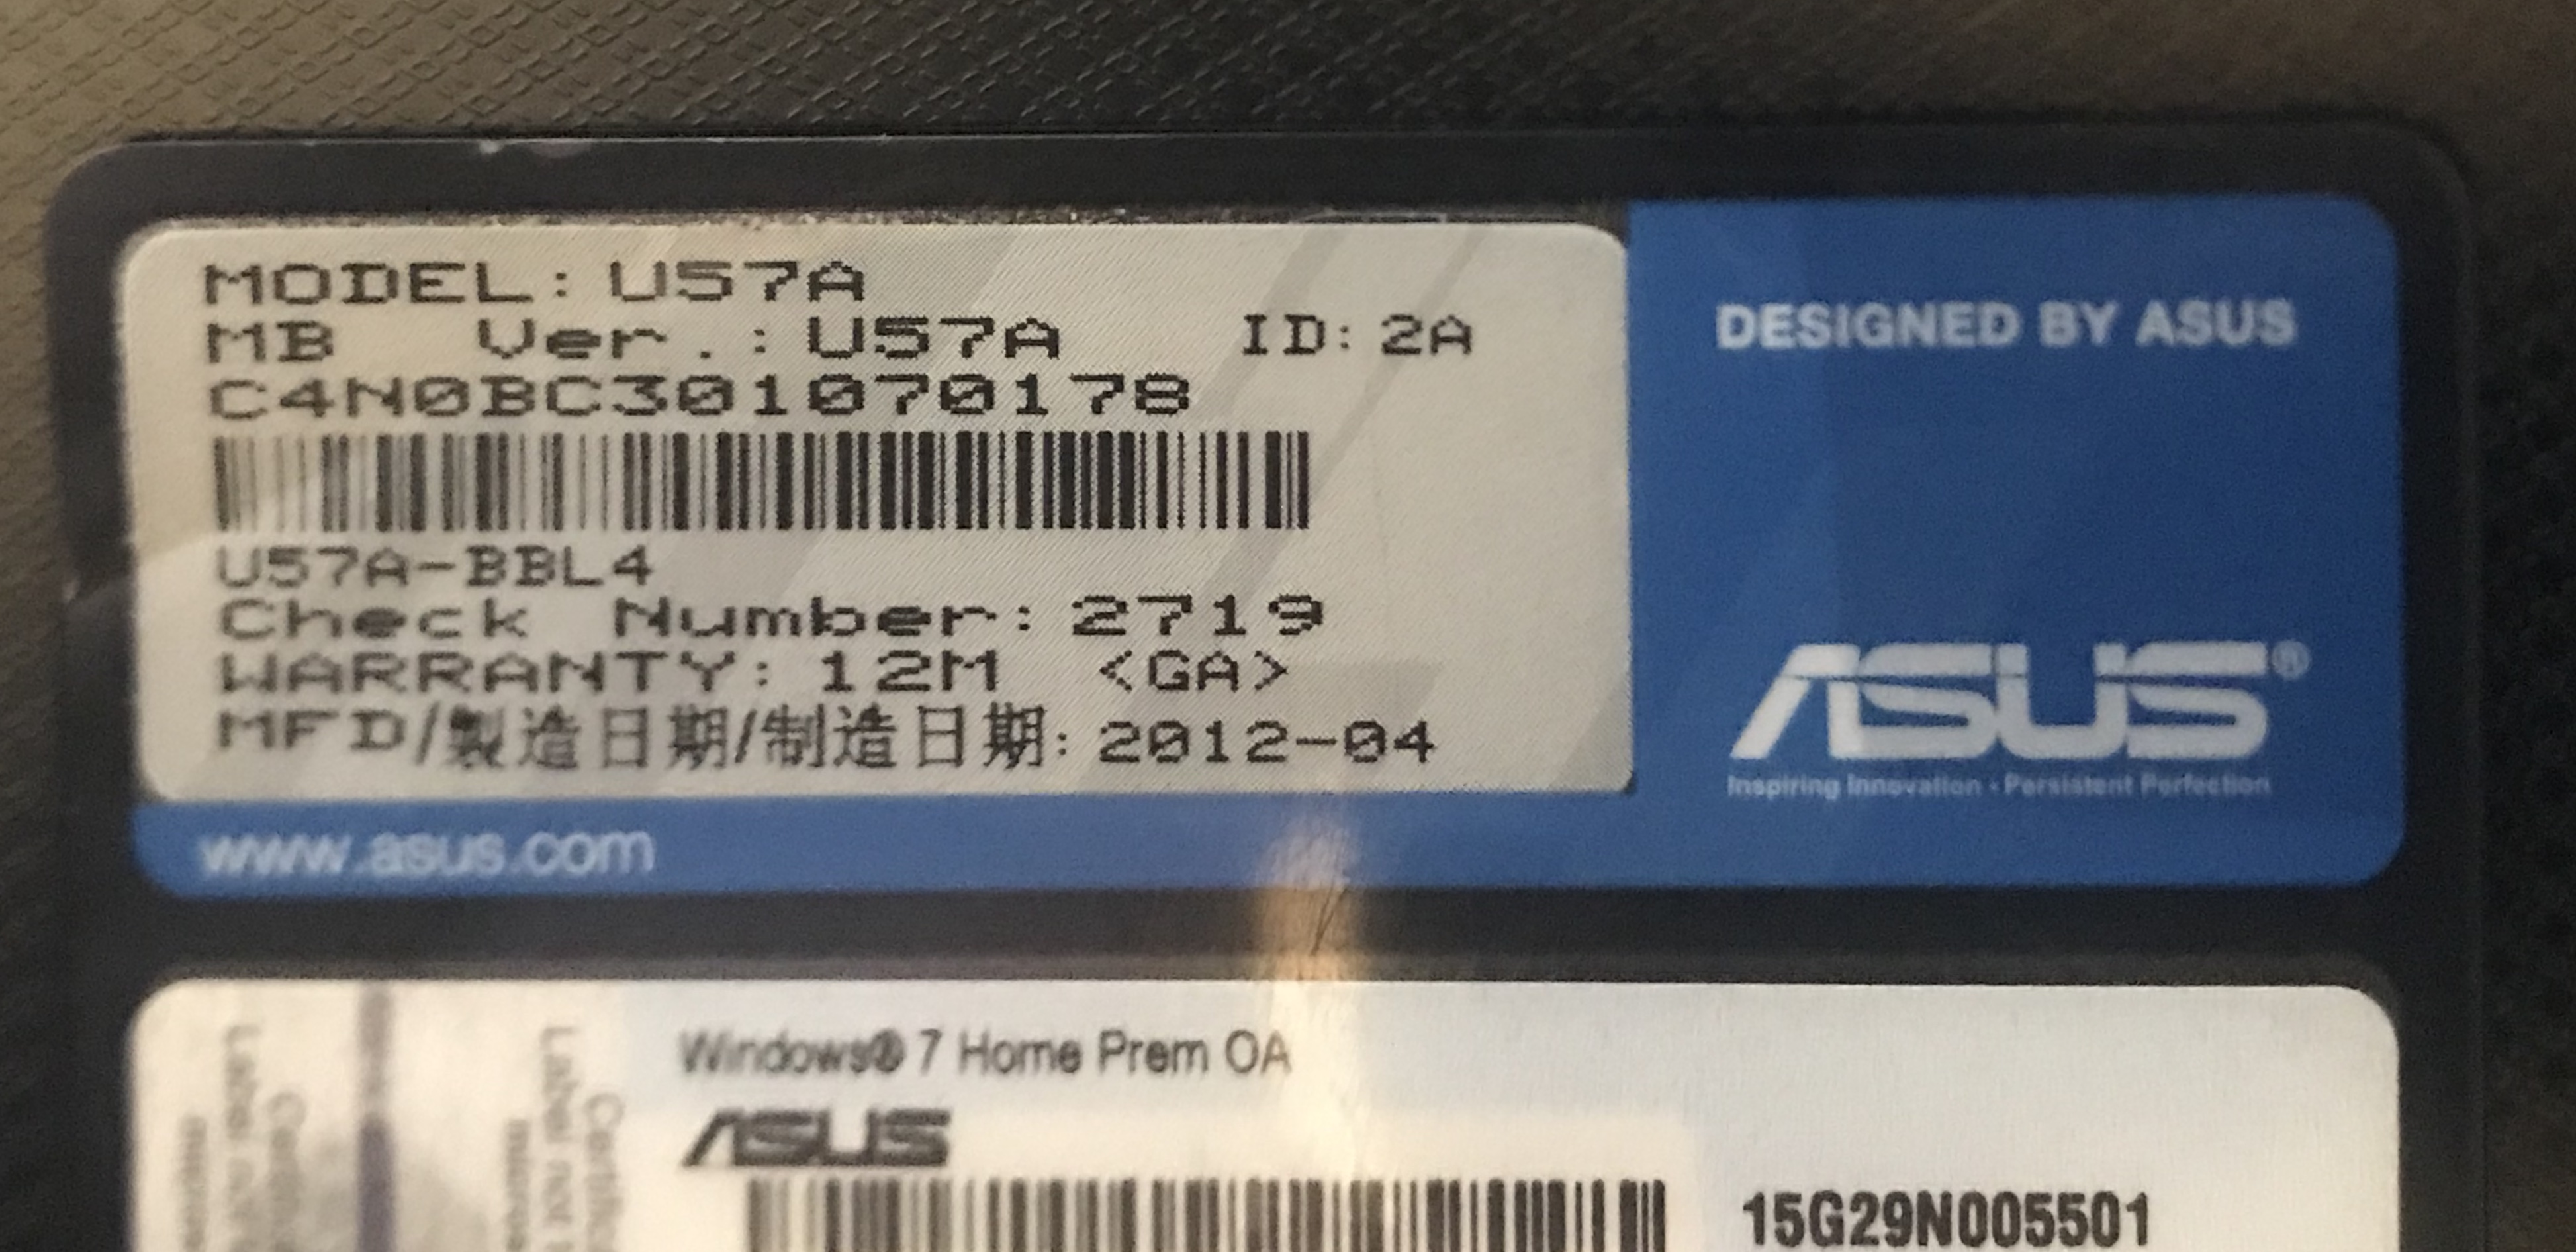 asus_laptop_sticker_10-09-2019